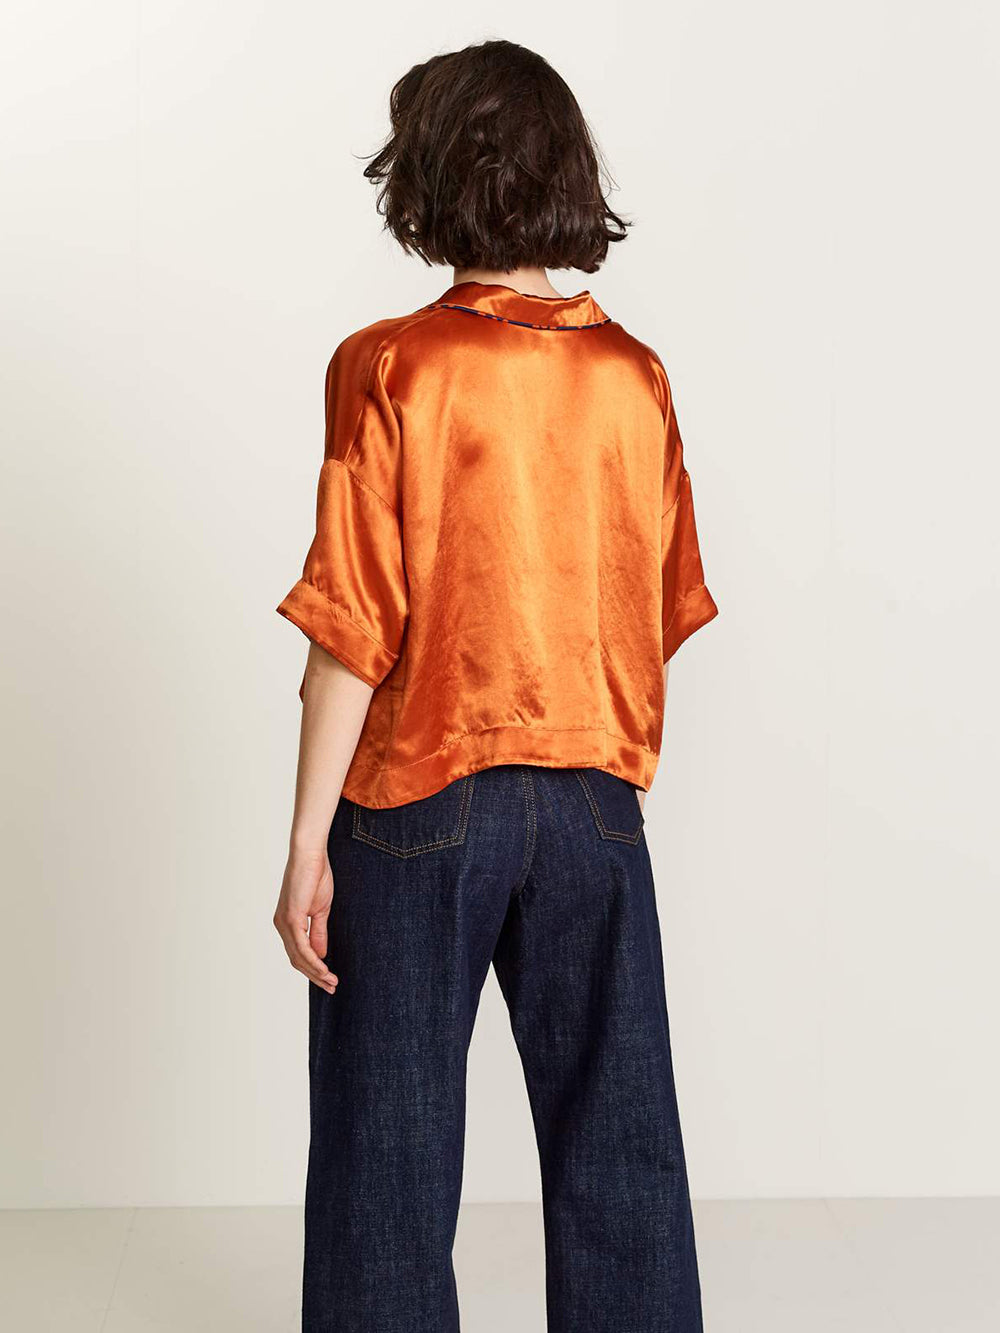 bellerose la-bas blouse in rusty